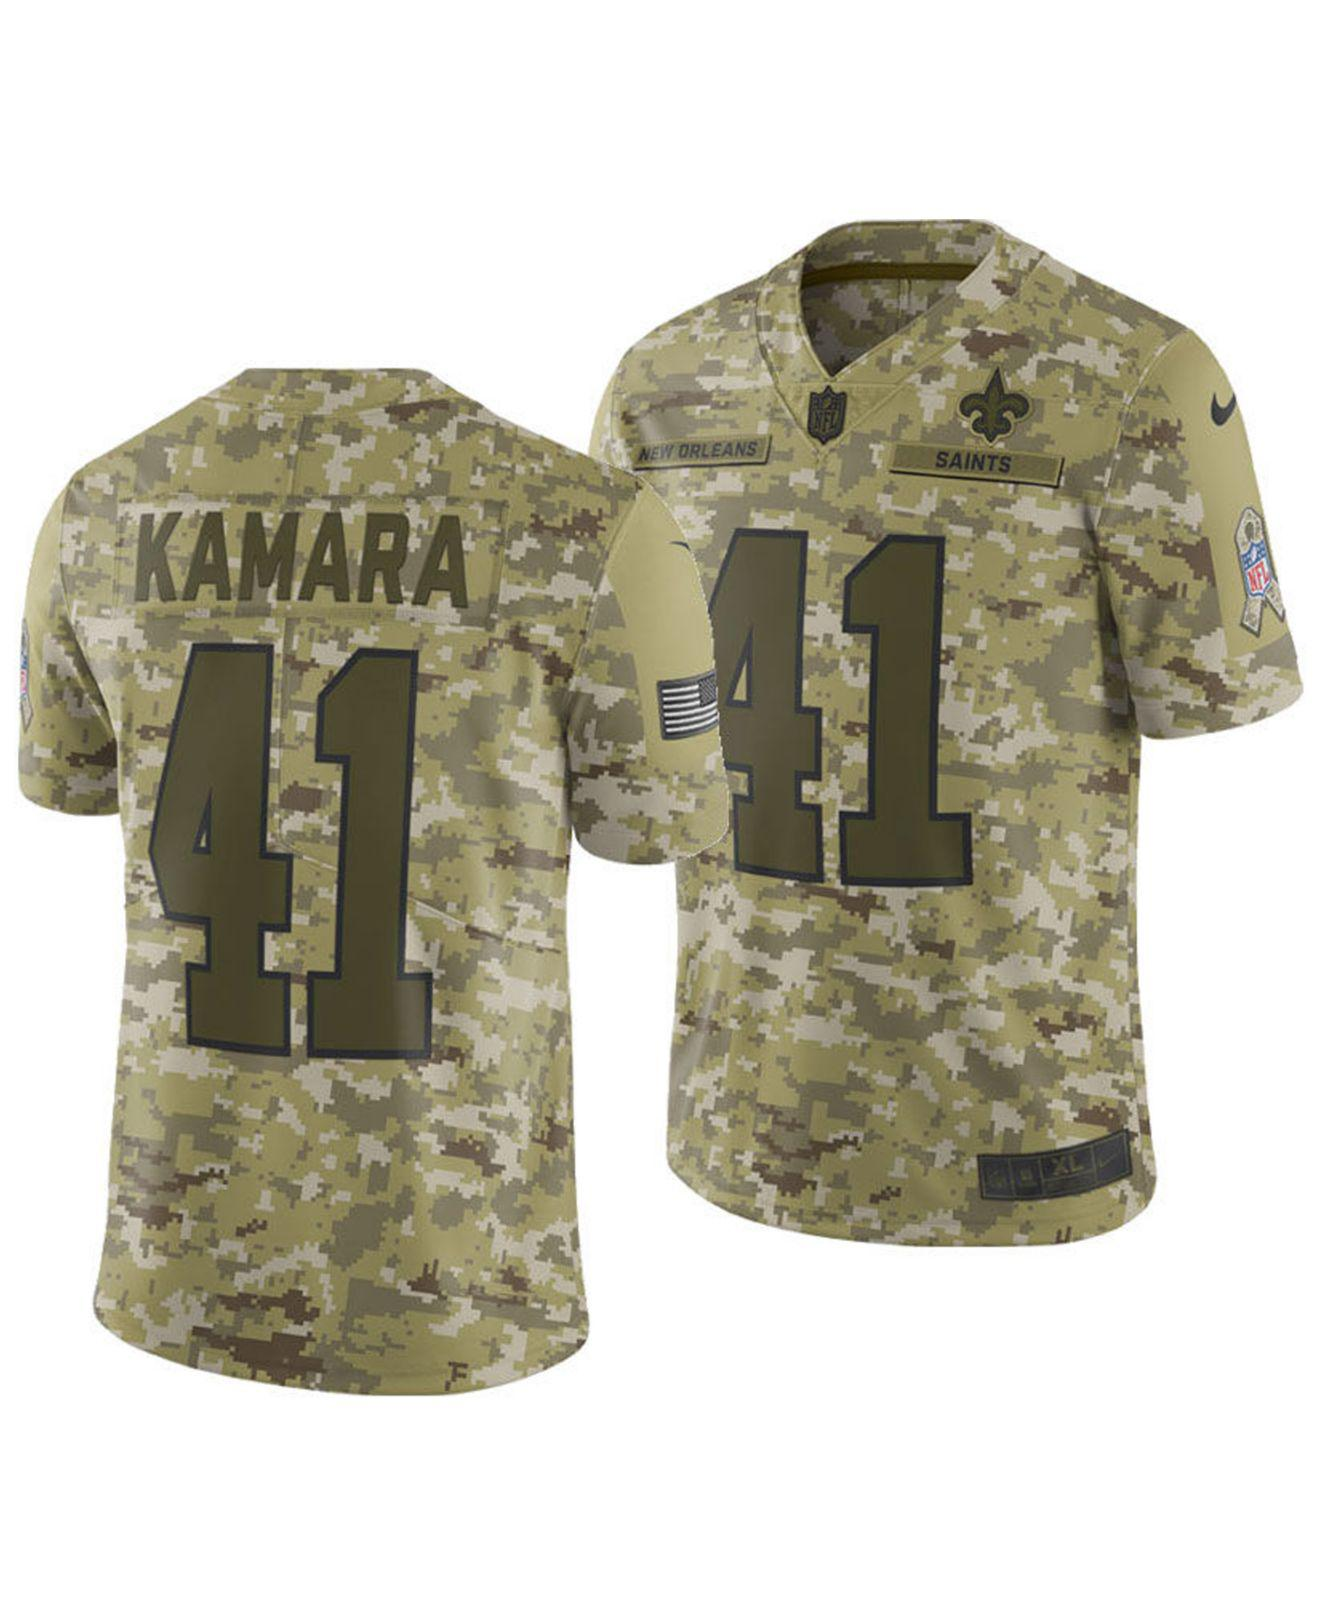 12ece59c3 Lyst - Nike Alvin Kamara New Orleans Saints Salute To Service Jersey ...